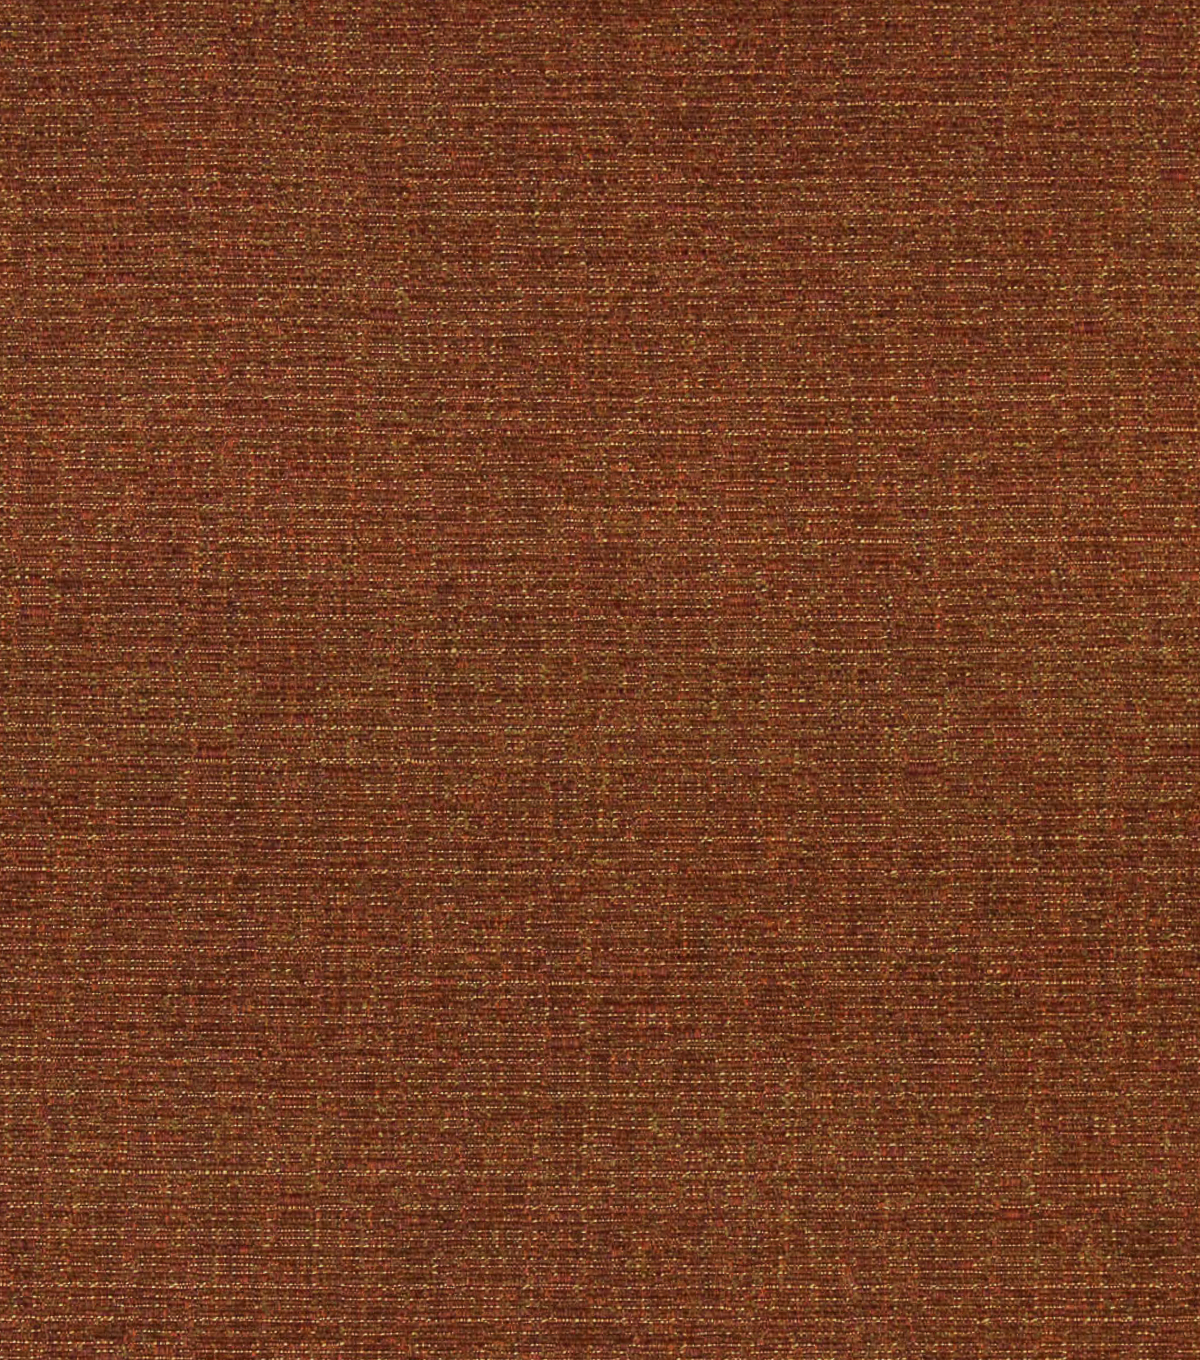 "Richloom Studio Upholstery Fabric 55""-Hightower/Spice"